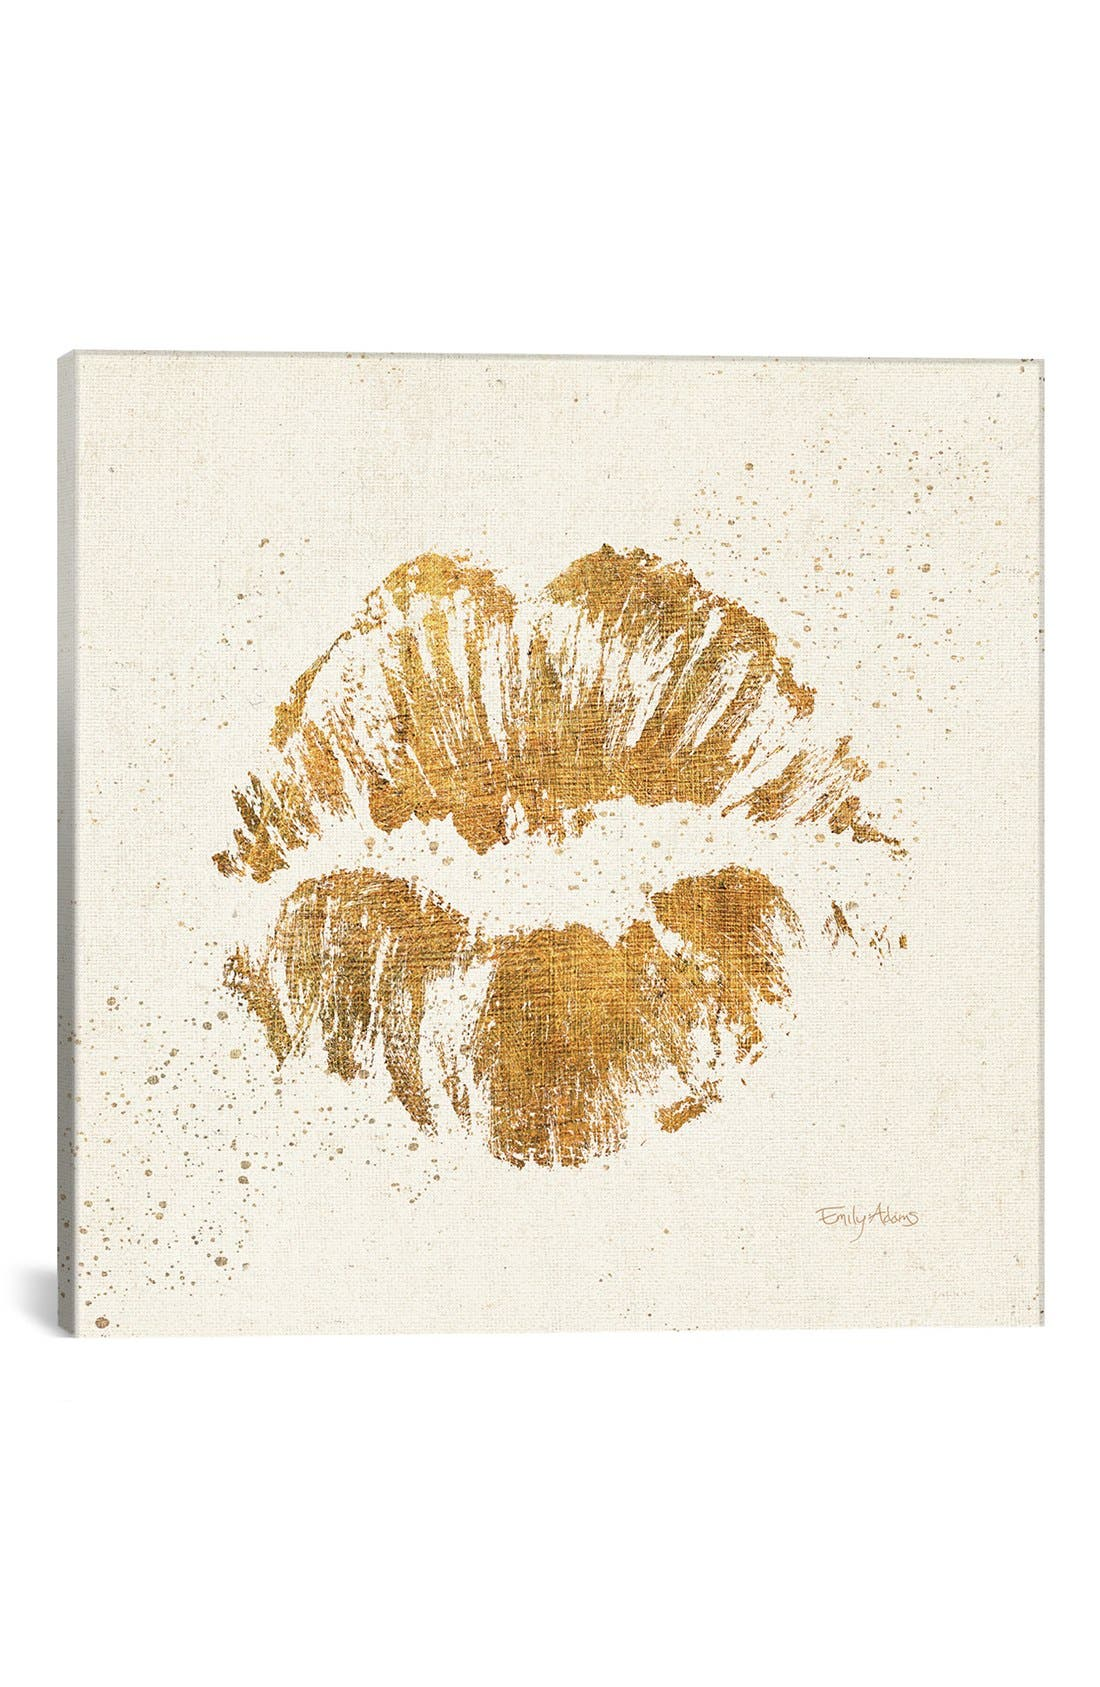 'Golden Lips' Giclée Print Canvas Art,                         Main,                         color, Beige